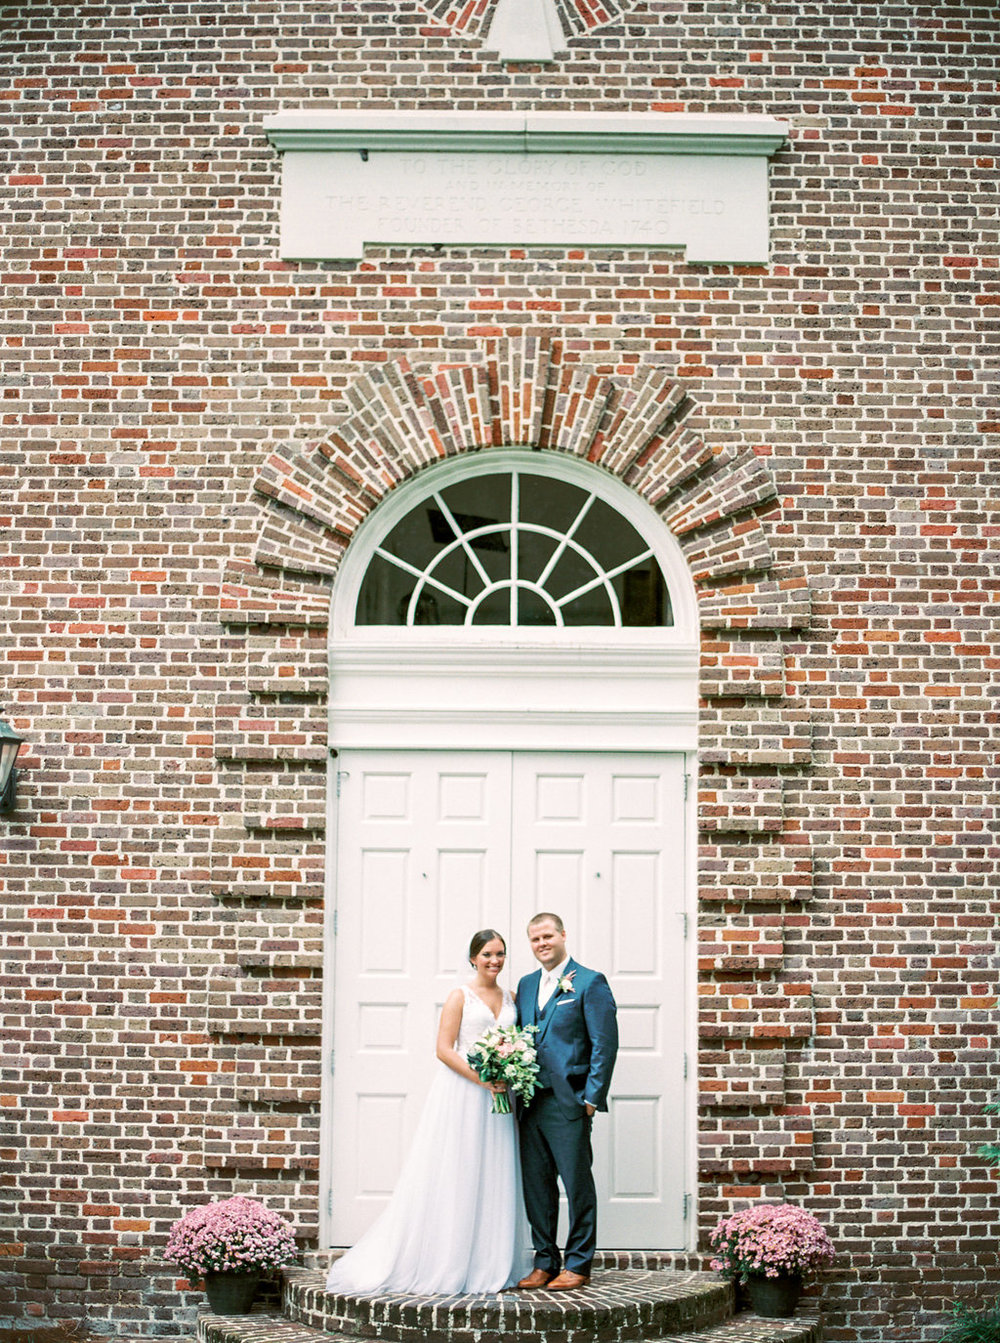 the-happy-bloom-photography-ivory-and-beau-wedding-planning-ivory-and-beau-bridal-boutique-whitfield-chapel-wedding-10-downing-wedding-savannah-wedding-historic-savannah-wedding-savannah-wedding-planner-savannah-weddings-a-to-zinnias-36.jpg